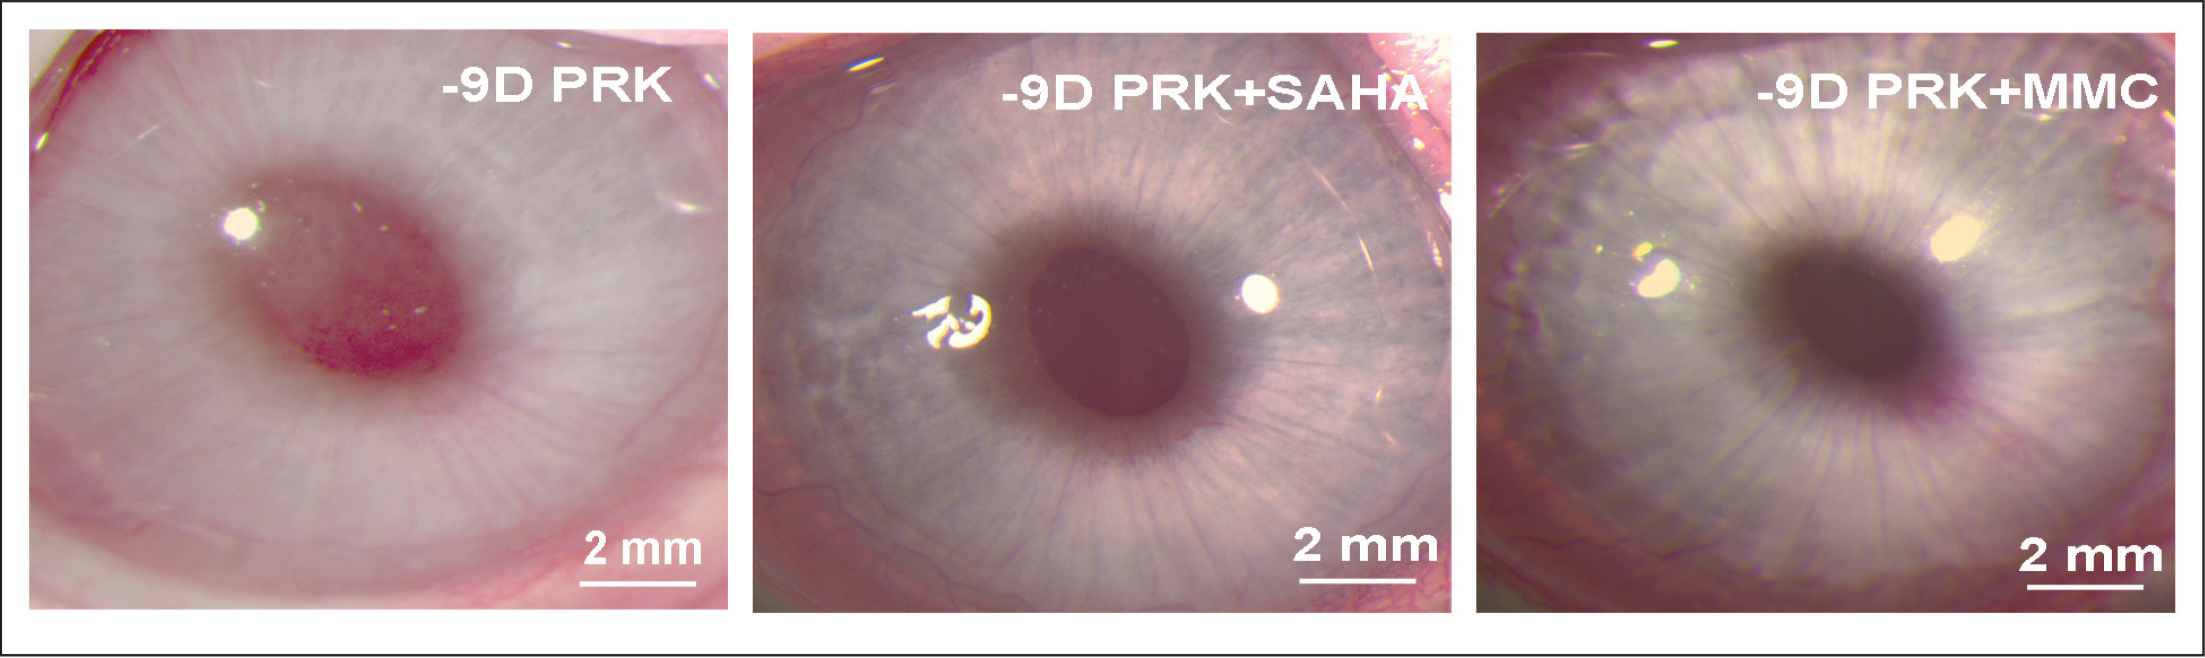 Effect of suberoylanilide hydroxamic acid (SAHA) or mitomycin C (MMC) application on corneal haze in vivo. Representative stereo-microscopy images showing corneal haze levels and its quantification noted at 4 months in −9.00 diopter photorefractive keratectomy (PRK) performed on rabbit corneas that received either balanced salt solution (control), SAHA (25 μM), or MMC (0.02%). Each group had 6 eyes for slit-lamp biomicroscopy. The central scar was considerably reduced and the overall corneal clarity appeared improved in corneas treated with SAHA or MMC.